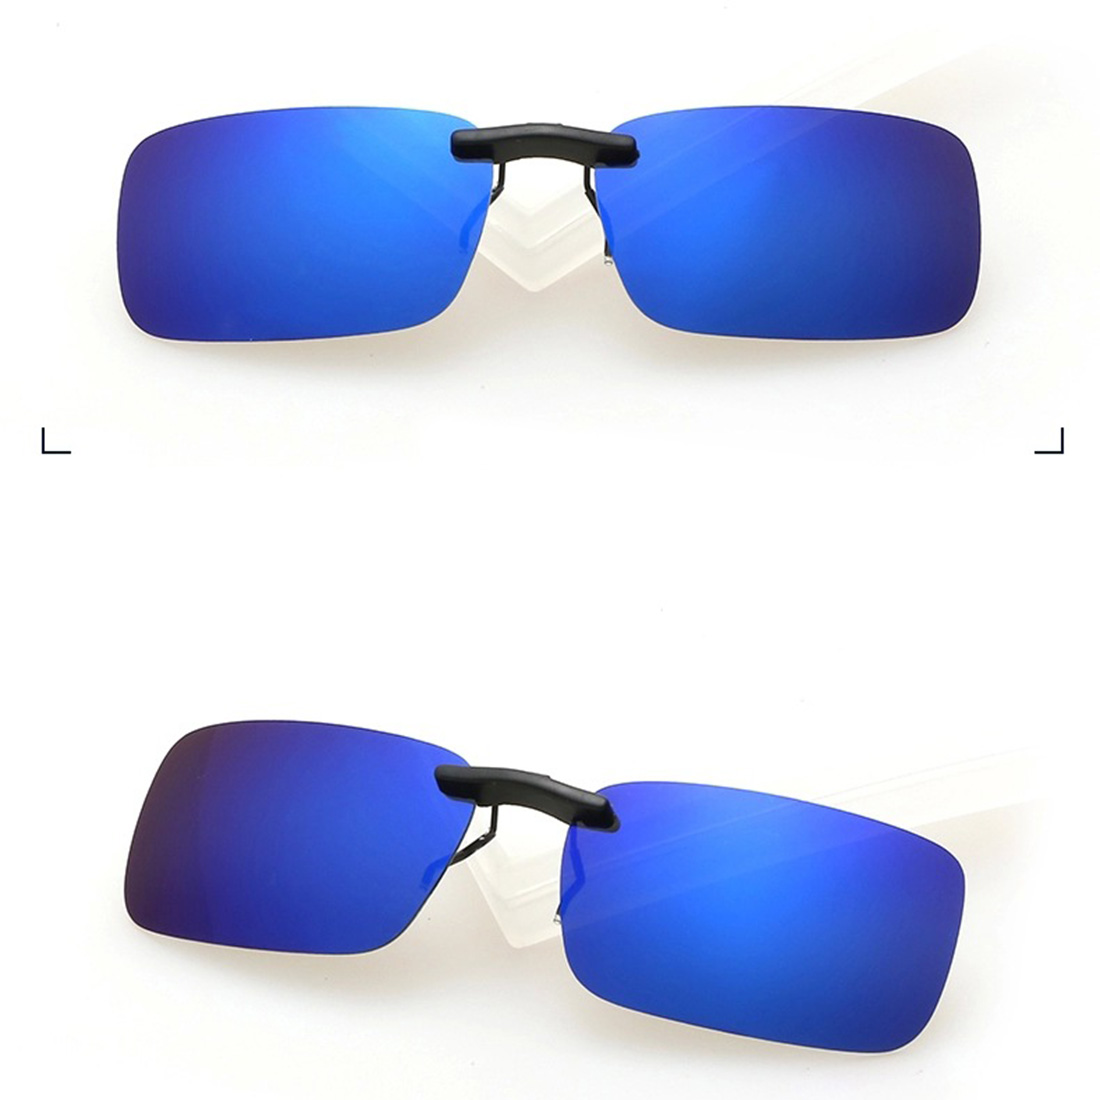 Unisex Polarized Clip On Sunglasses Driving Night Vision Lens Anti-UVA Anti-UVB Cycling Riding Pesca Equipment zonnebril clip стоимость